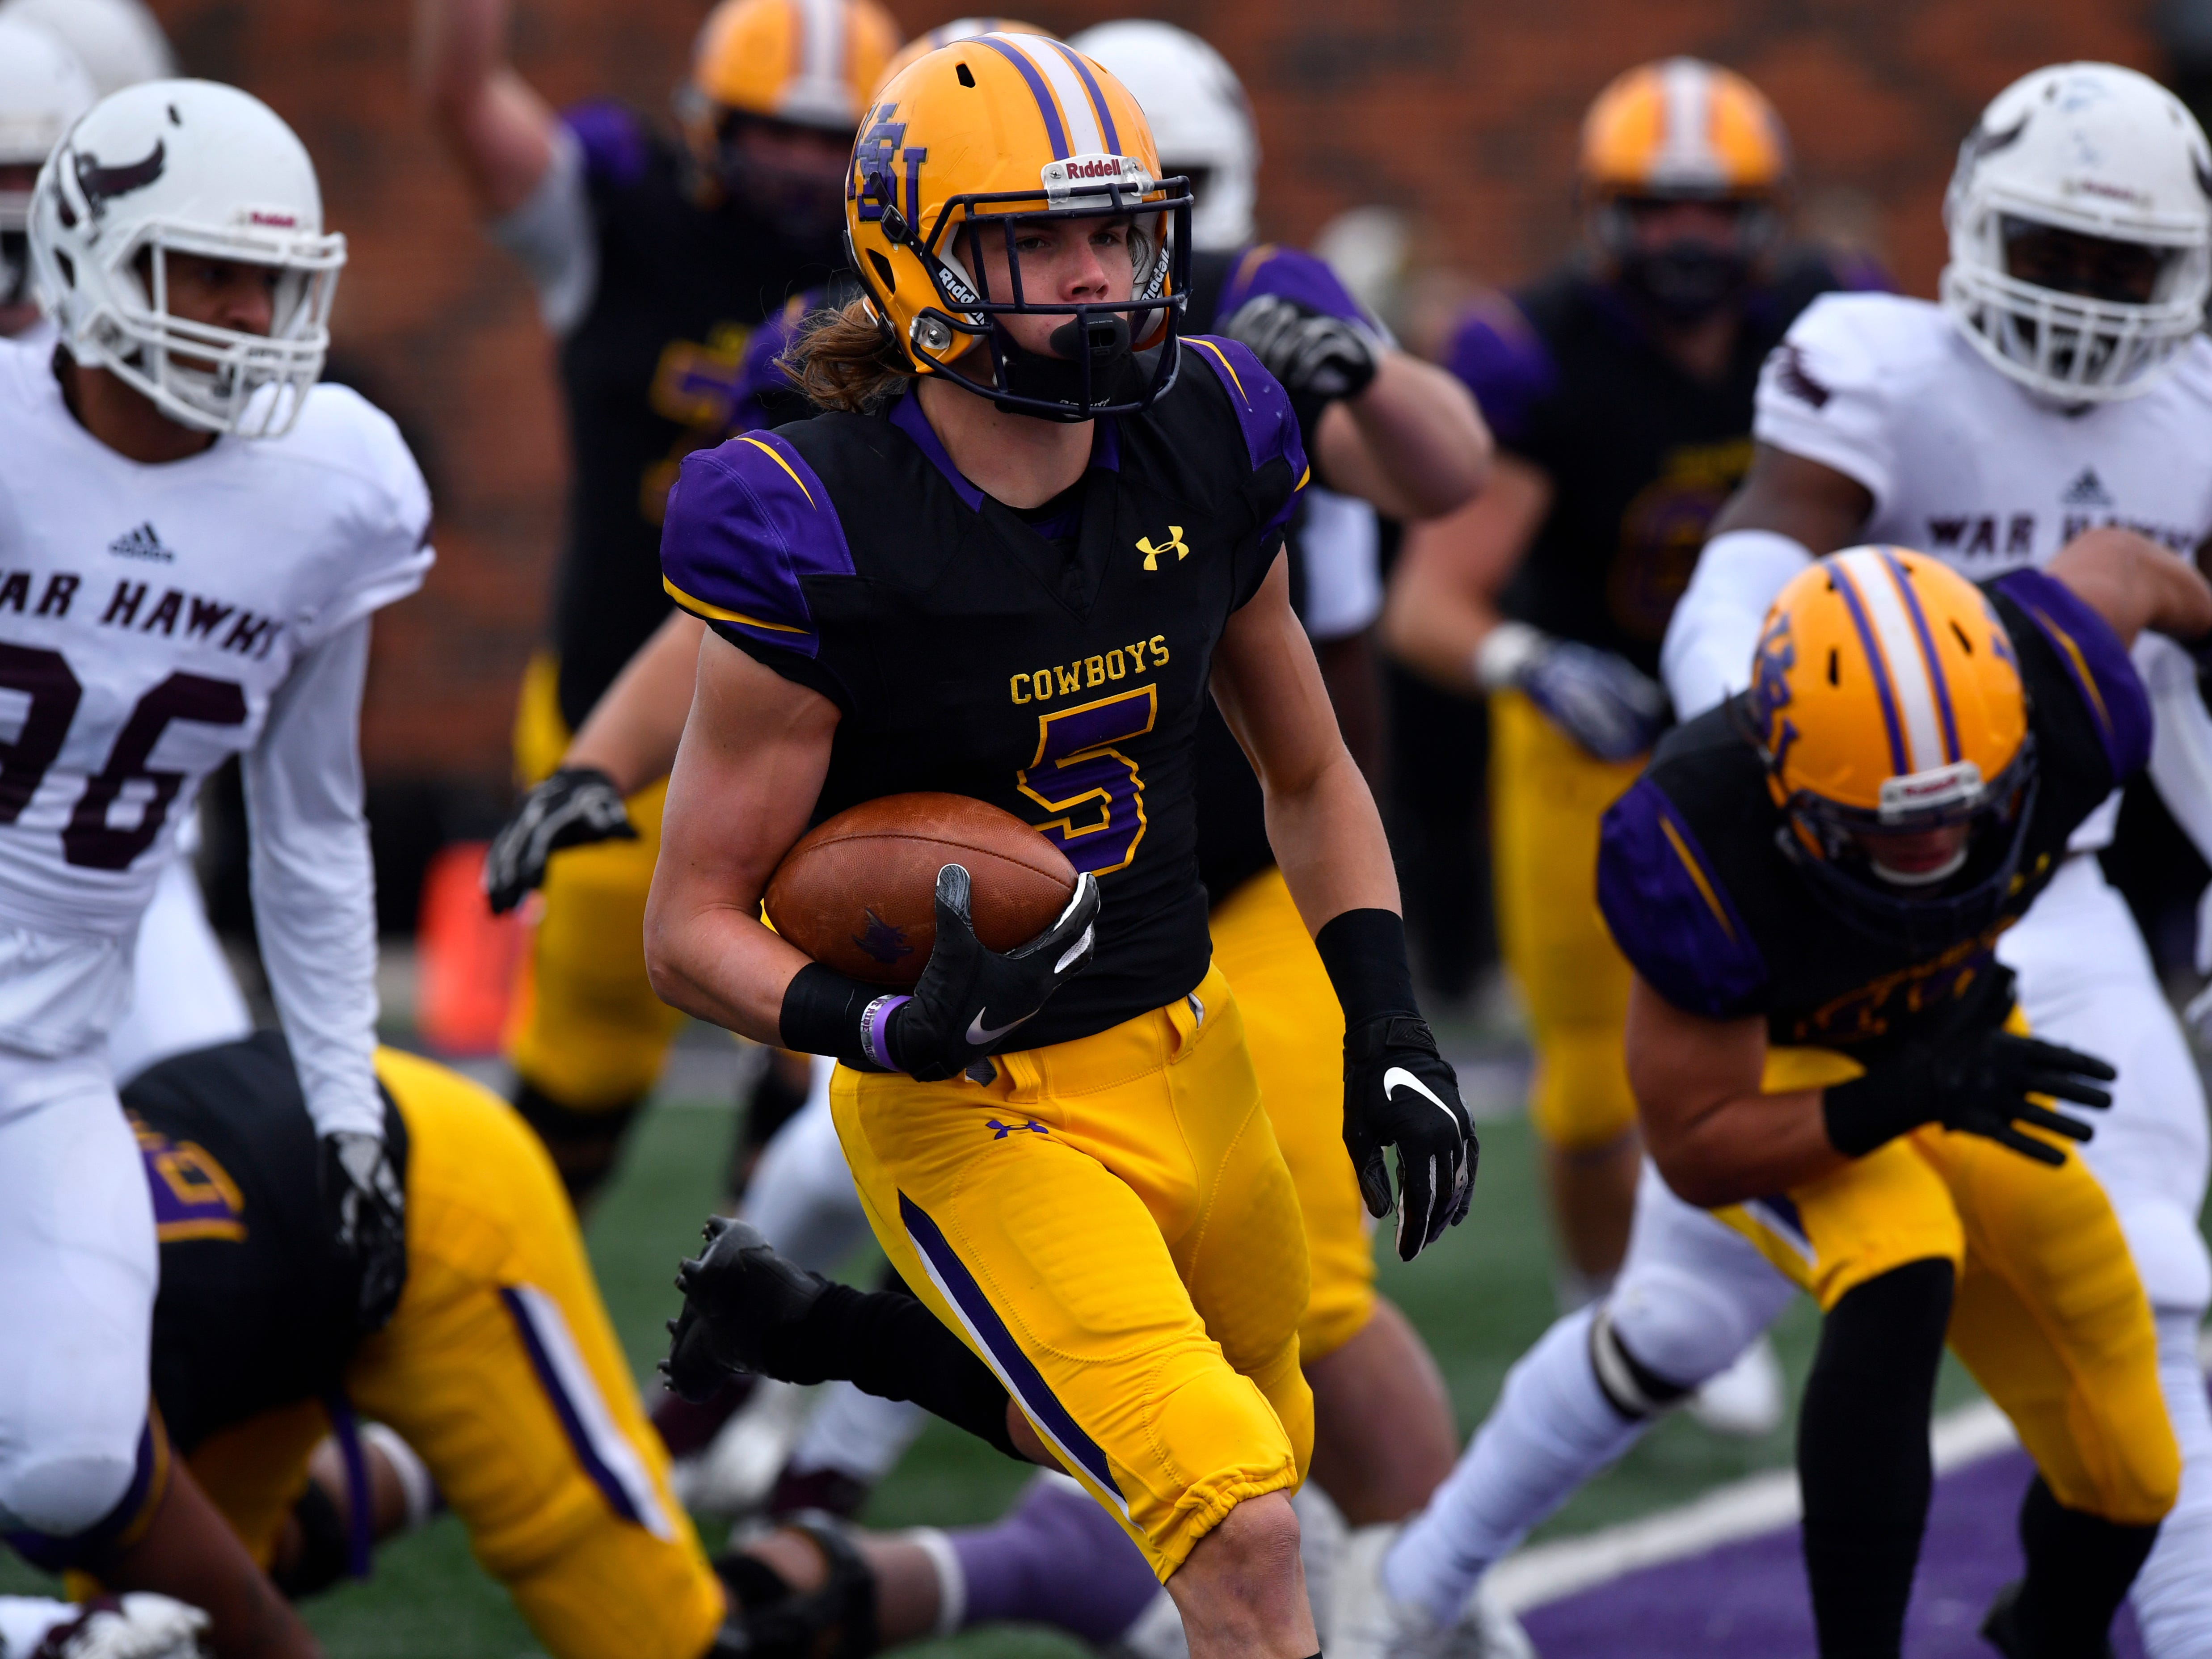 Hardin-Simmons wide receiver Reese Childress crosses the goal line for a touchdown against McMurry Saturday Nov. 10, 2018. Final score was 83-6, HSU.